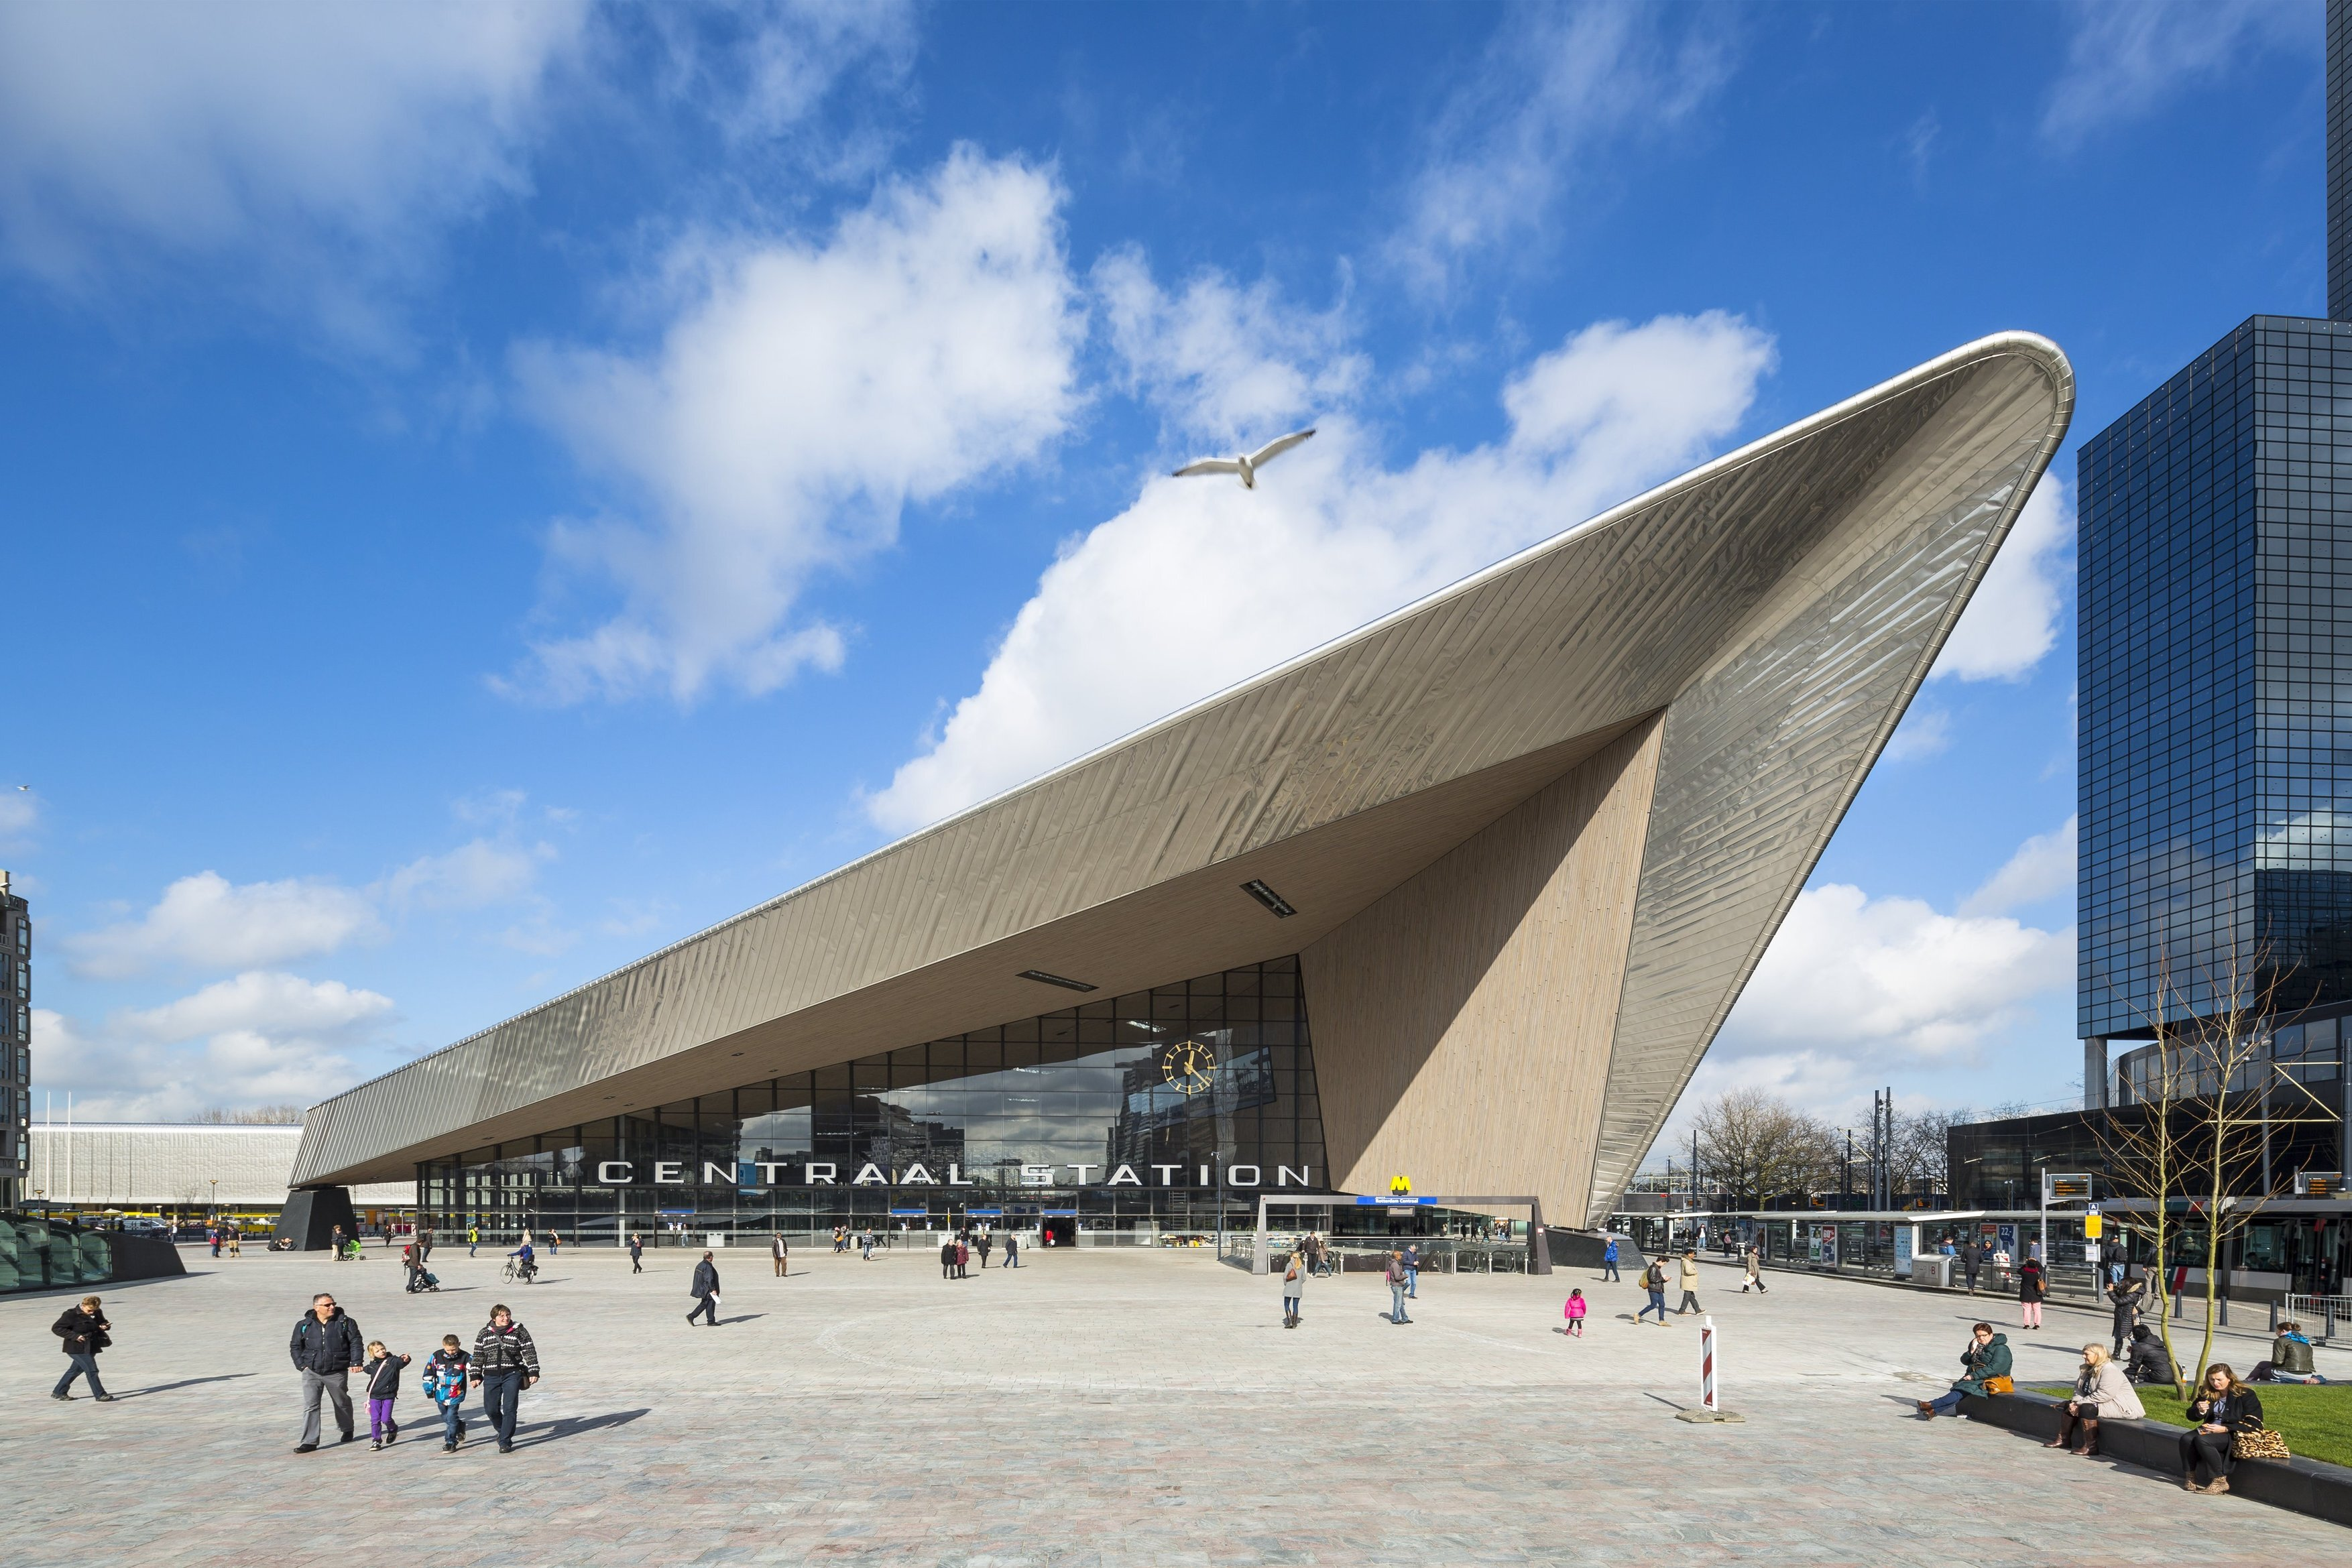 480 Rotterdam Centraal Station Team CS Benthem Crouwel Jannes Linders N9 a4